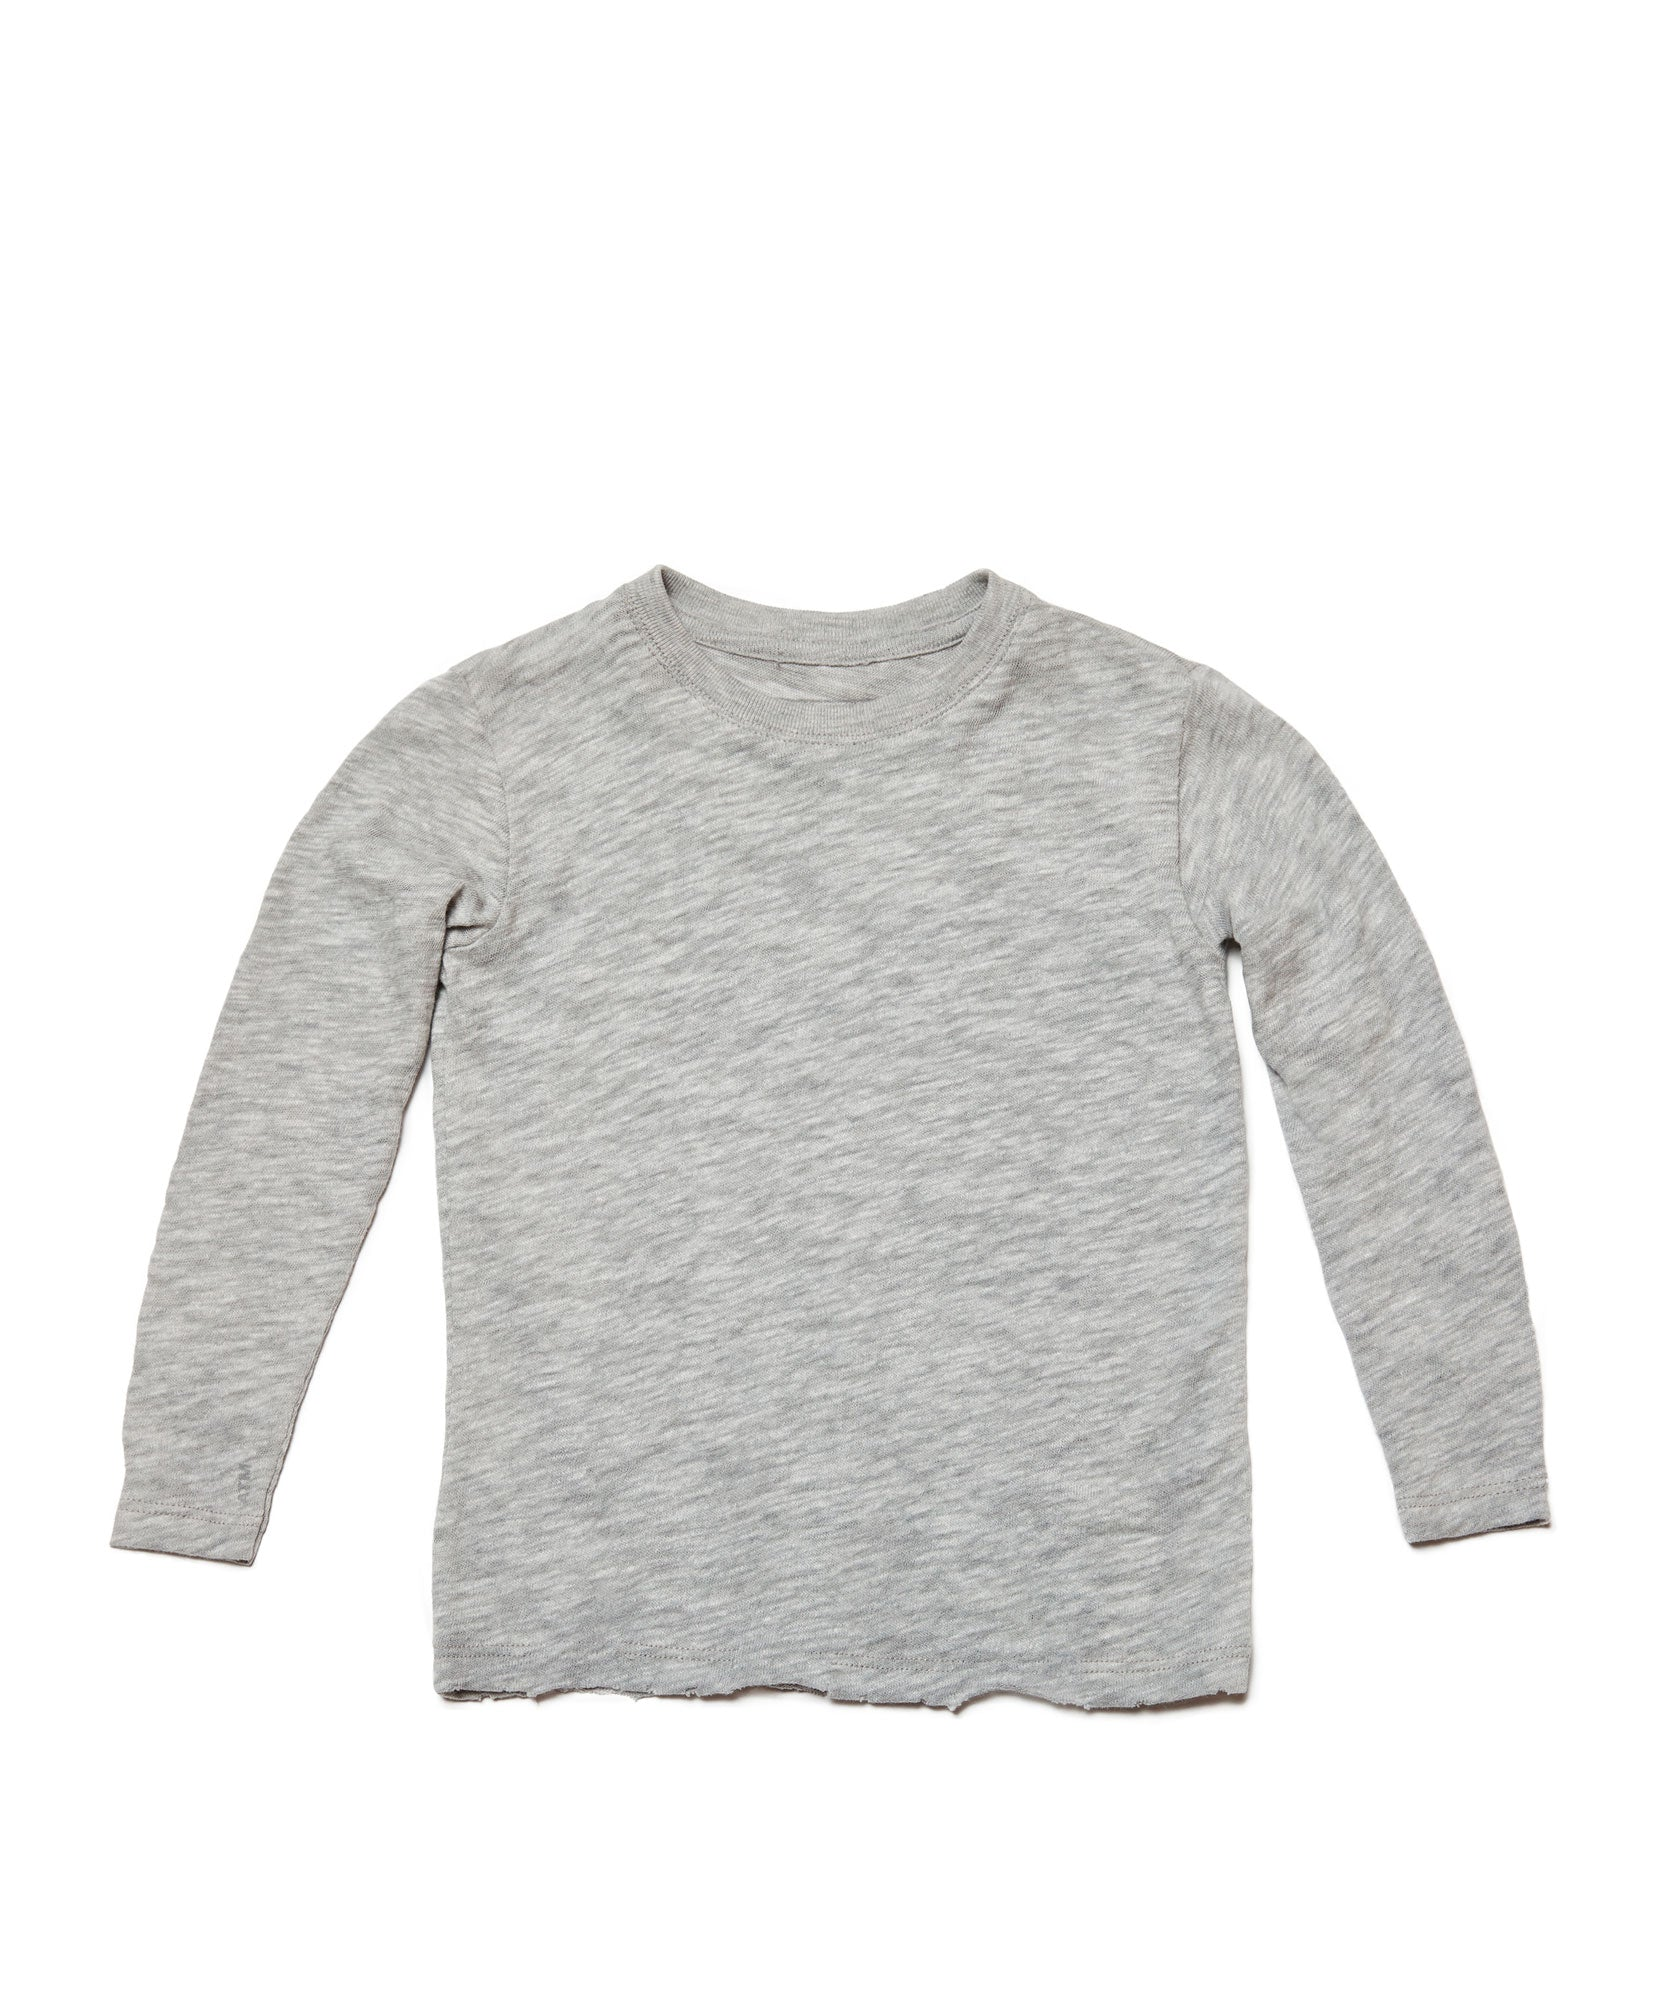 Heather Grey Kids Slub Jersey Long Sleeve Tee - Kid's Cotton Long Sleeve Tee by ATM Anthony Thomas Melillo